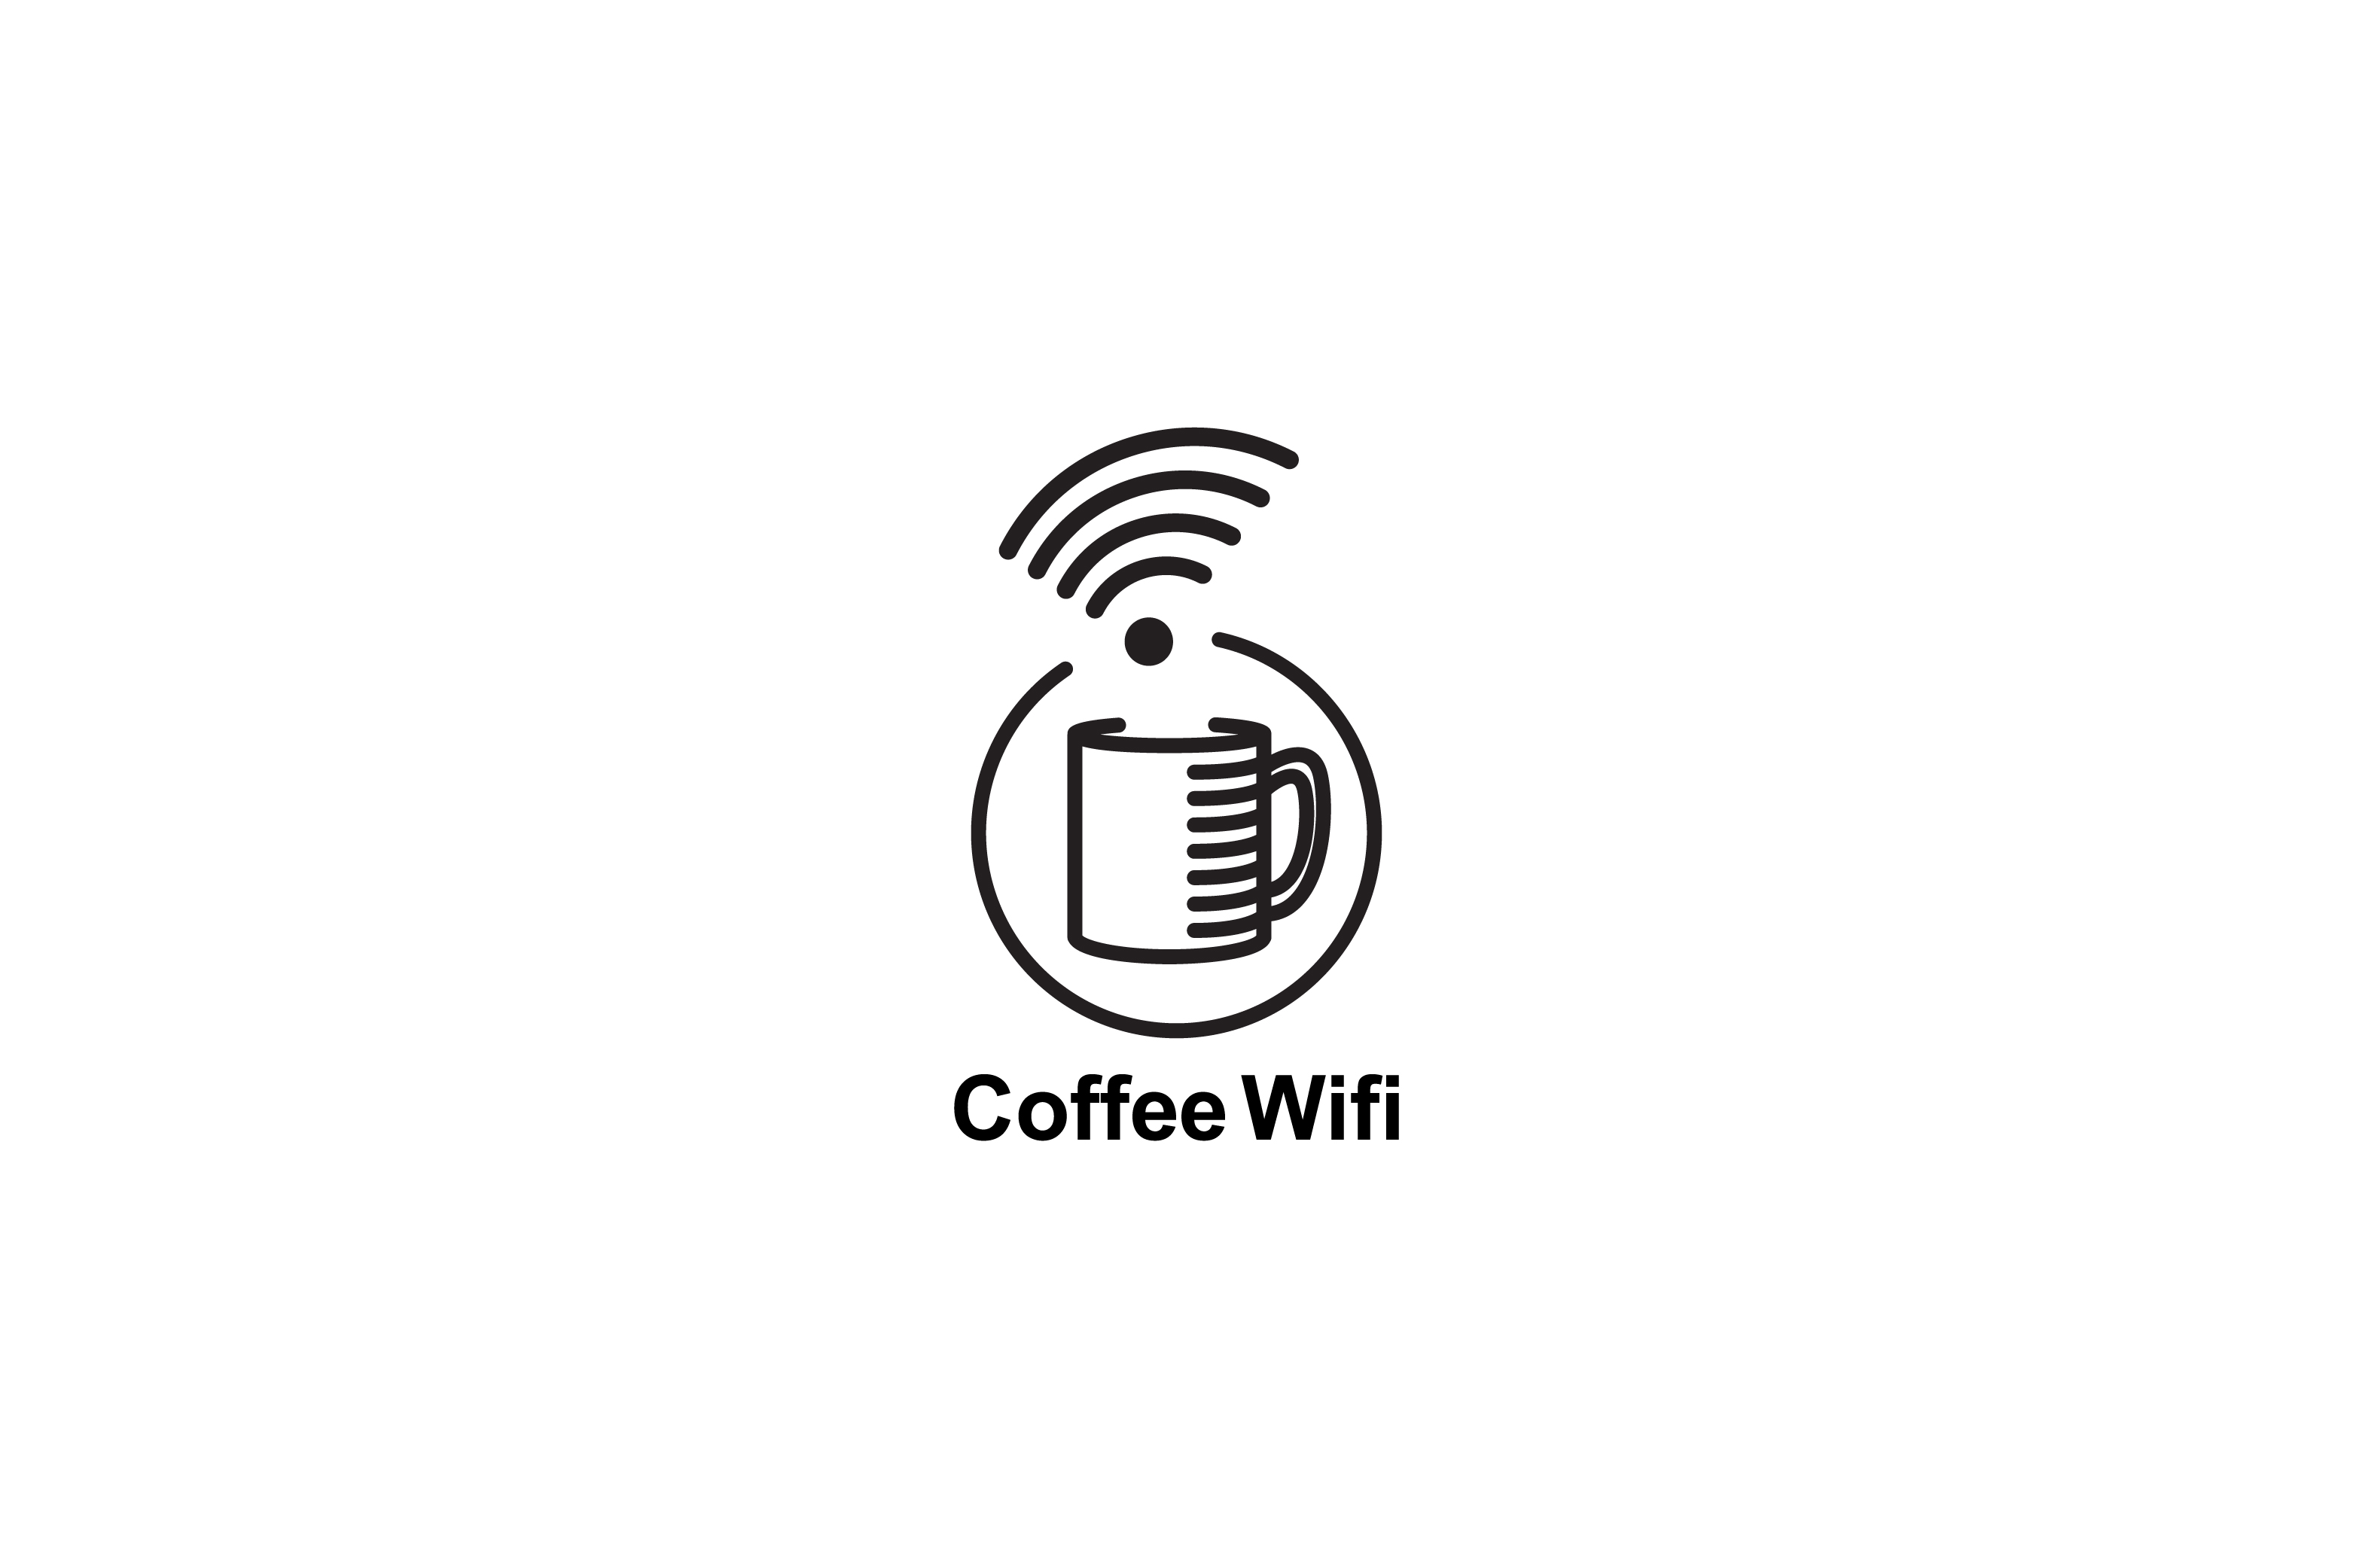 Download Free Coffee Wifi Logo Design Graphic By Sabavector Creative Fabrica for Cricut Explore, Silhouette and other cutting machines.